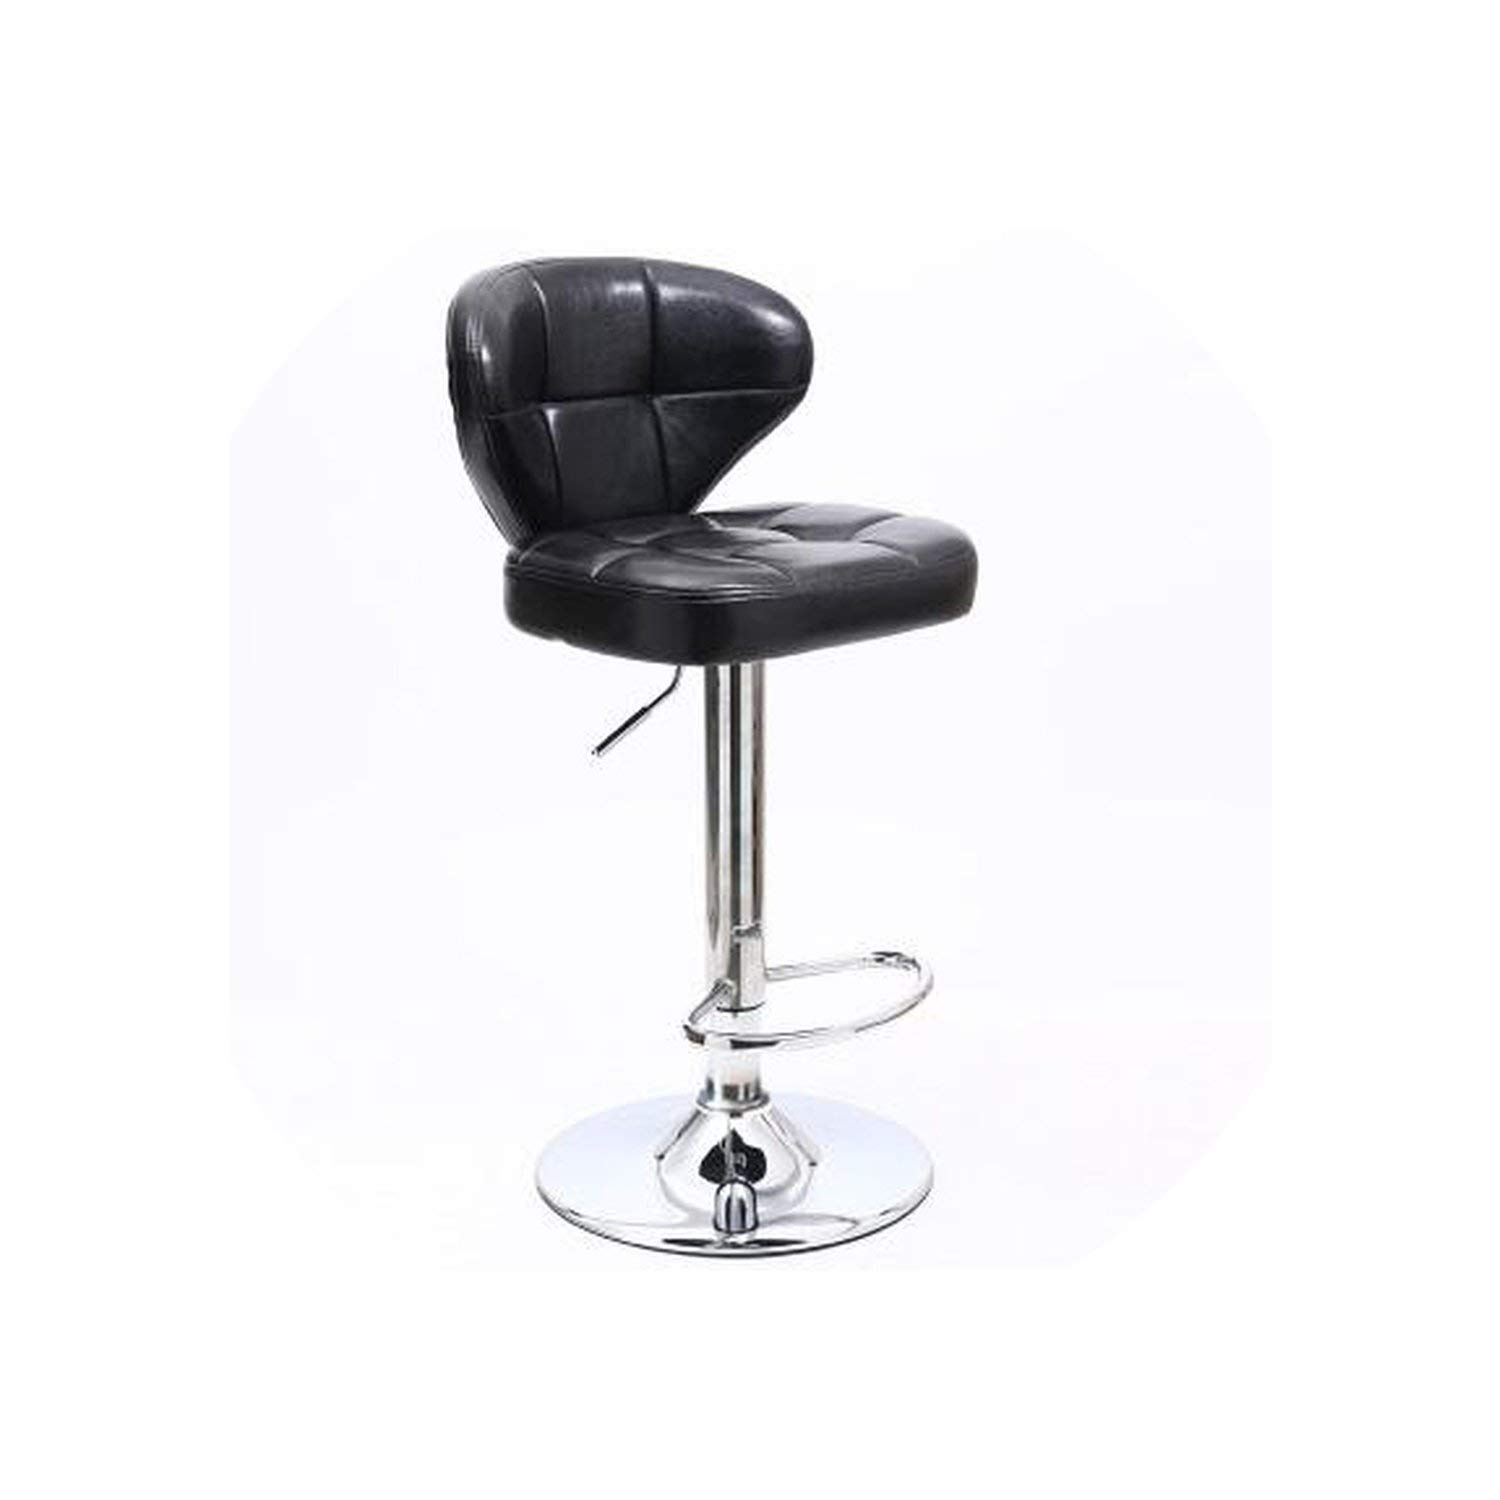 Style 3 tthappy76 European Bar Stools Bar Chair High Table and Chair Bar Stool Lifting redating Home Back Computer Chair,Style 11